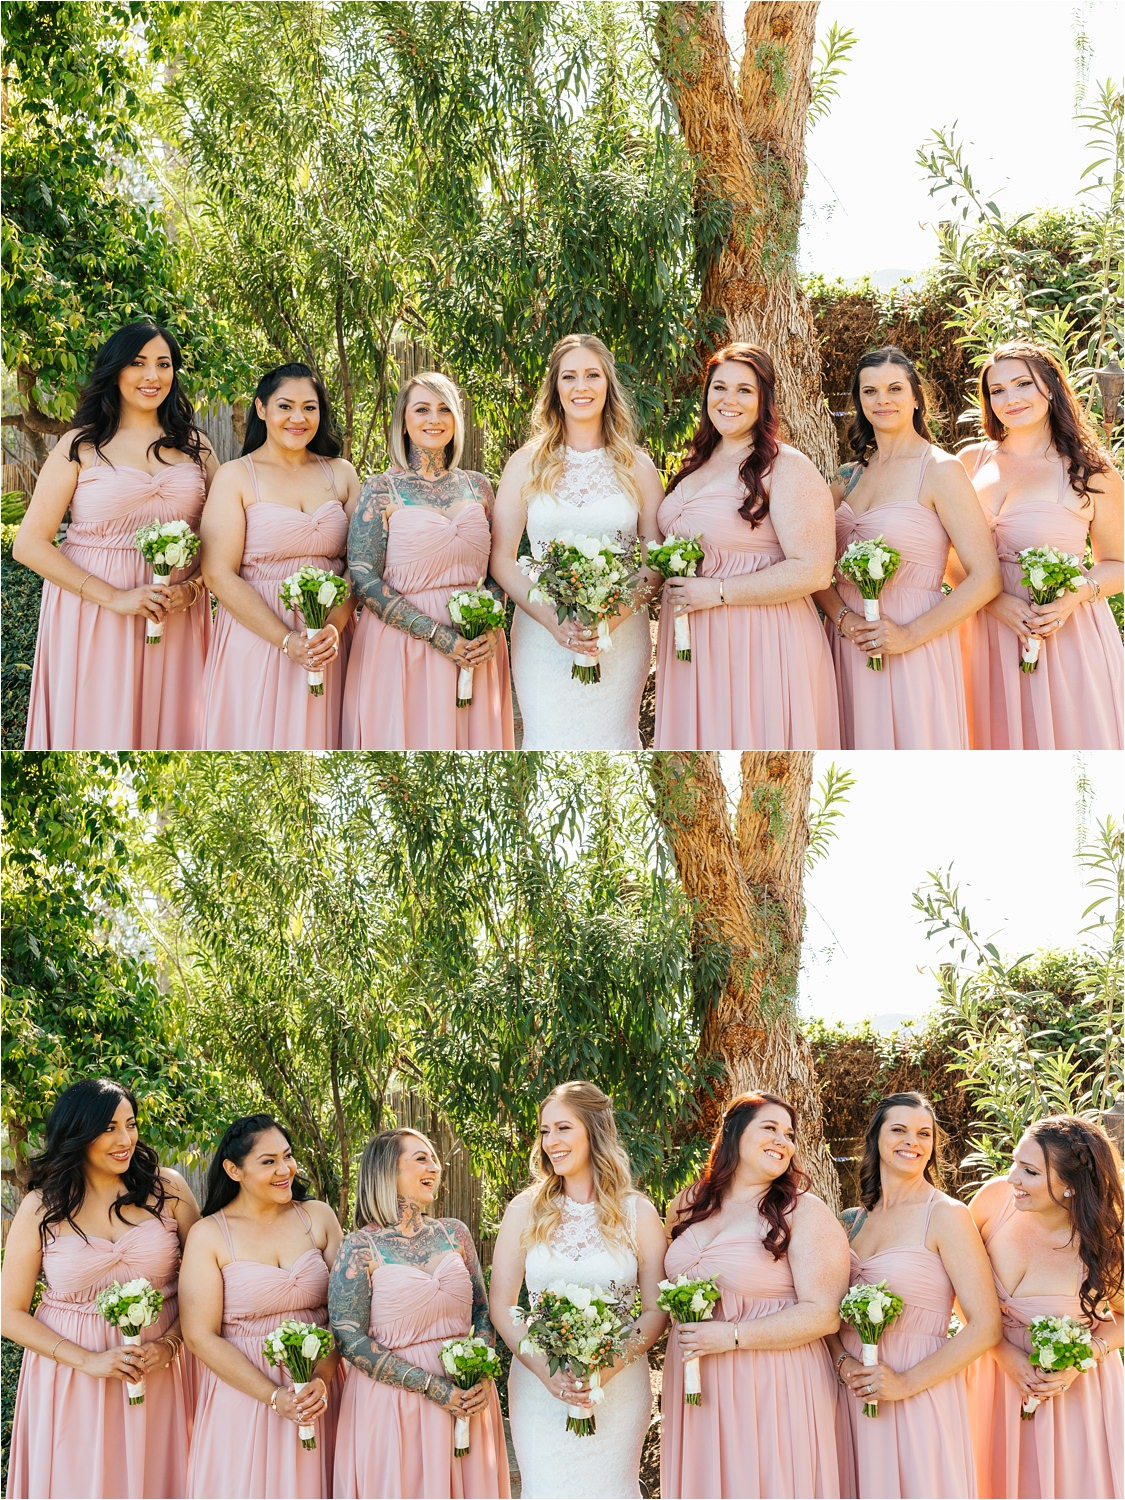 Beautiful bride and bridesmaids photos - https://brittneyhannonphotography.com